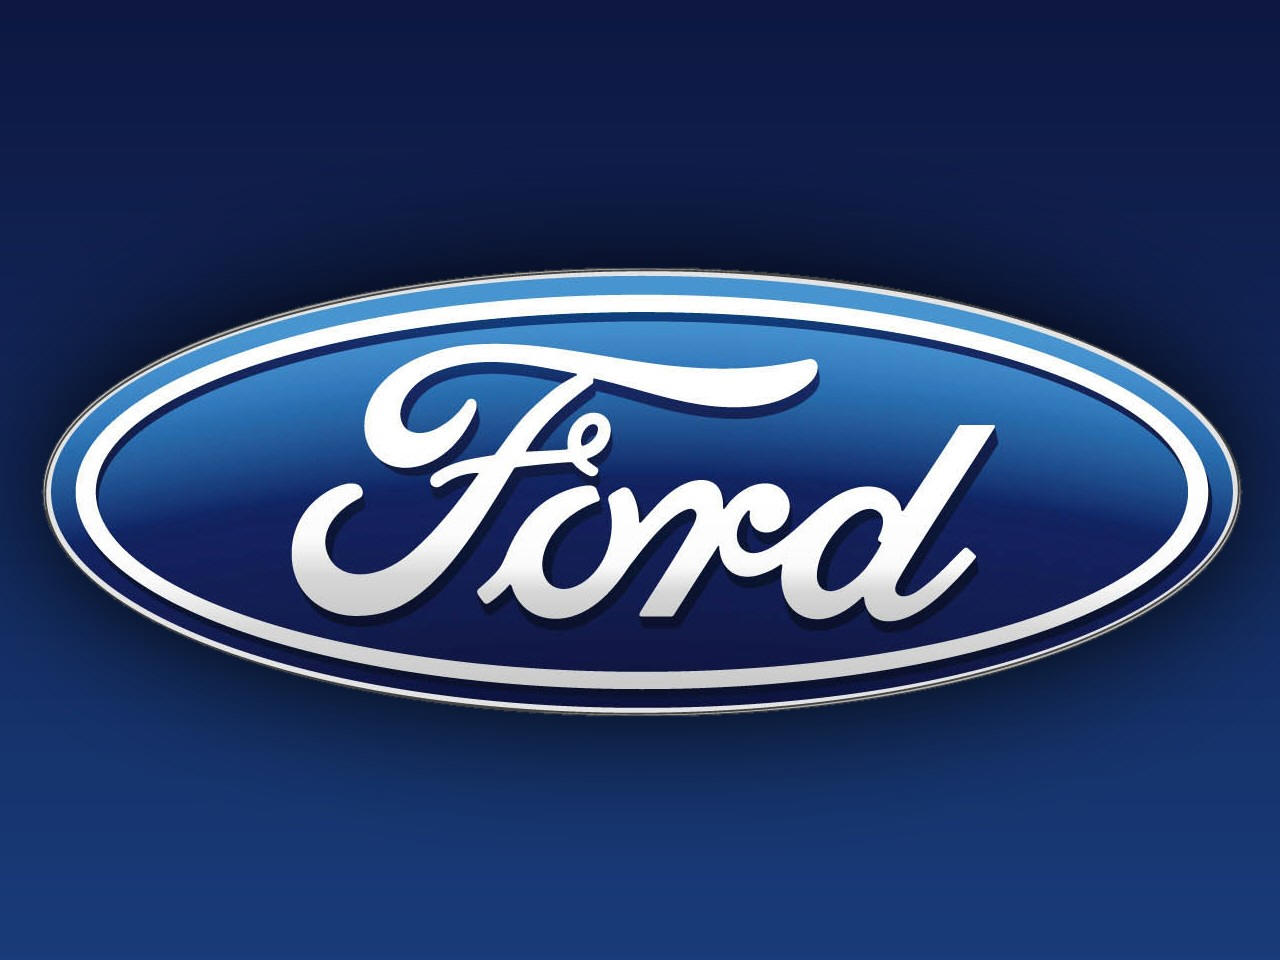 Ford Credit Earns $427 Million in the Third Quarter of 2009